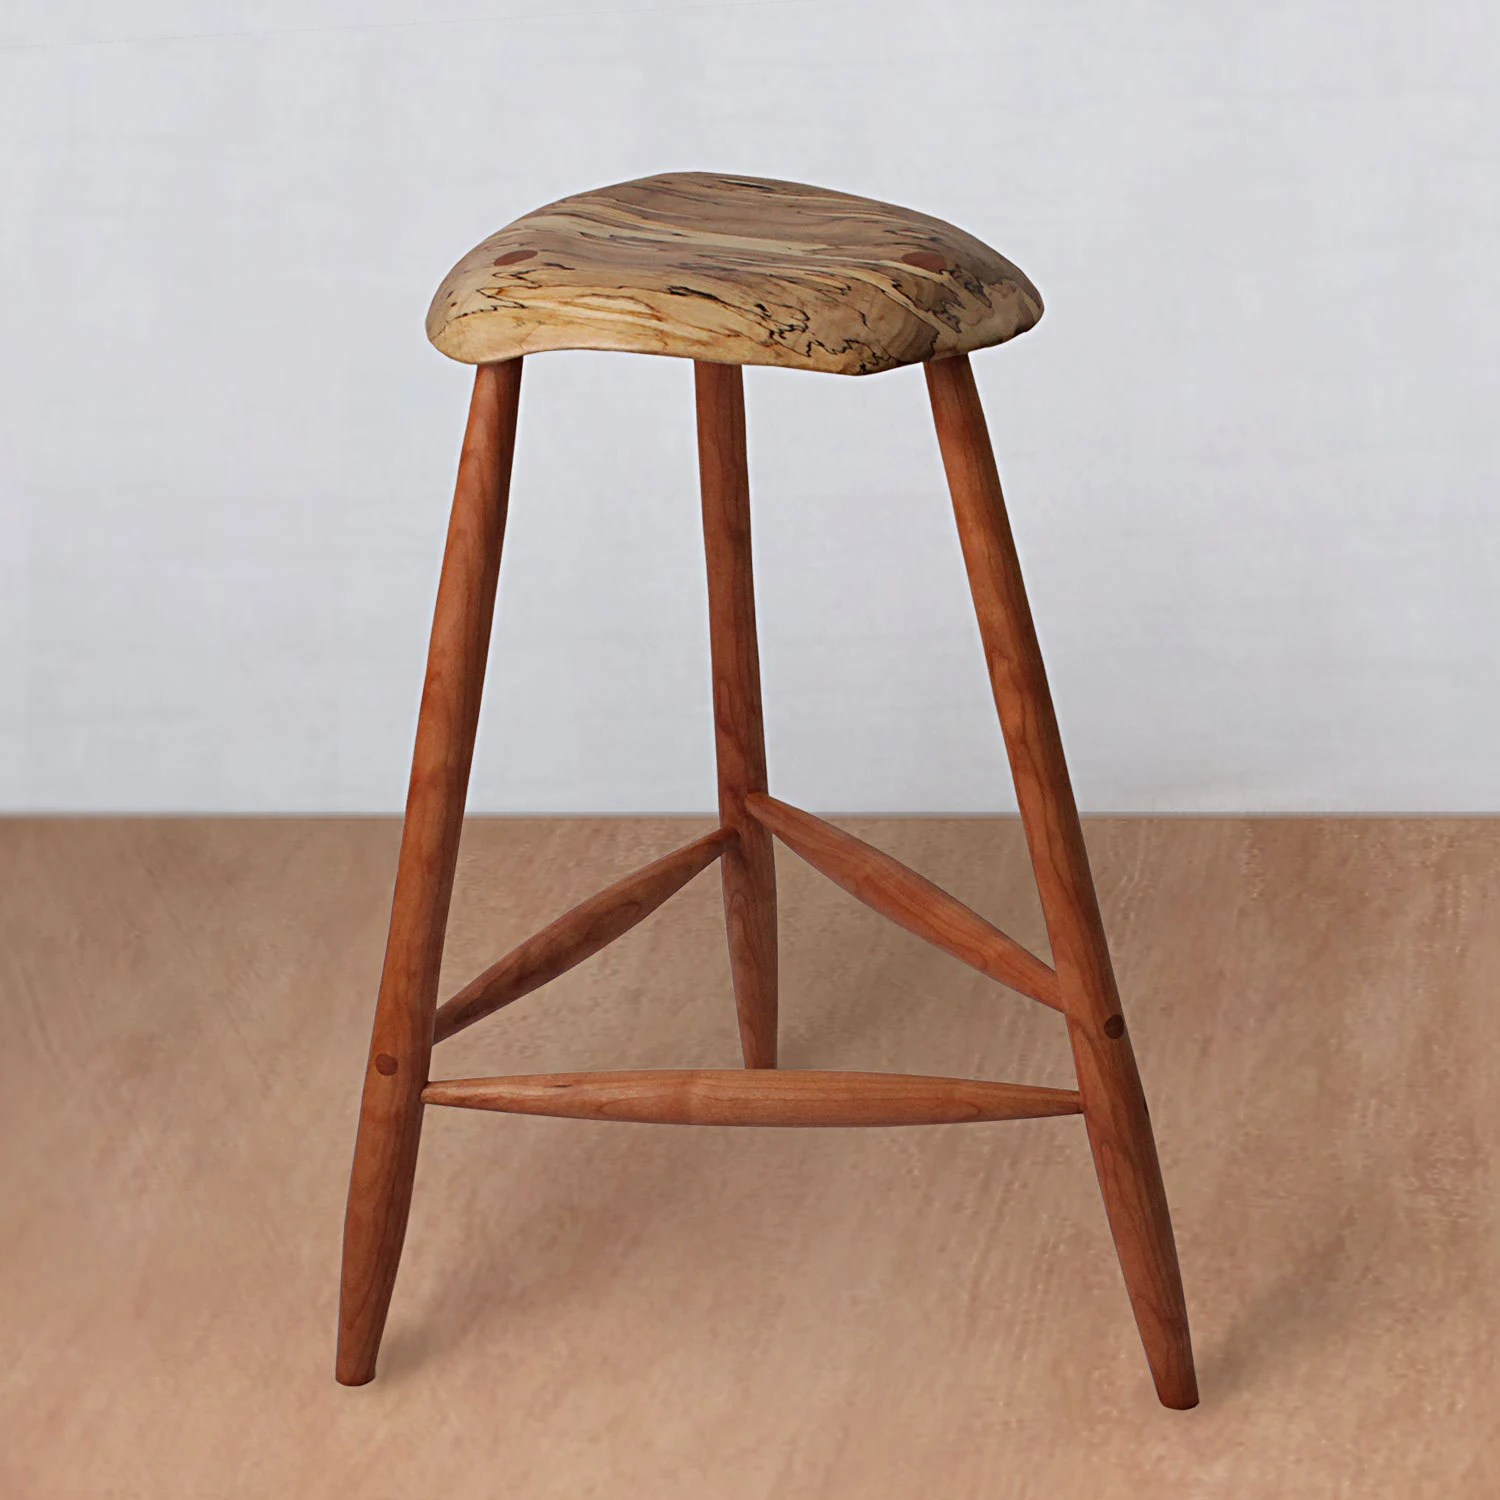 Modern Wood Counter Stool Mid Century Modern Wood Stool Wooden Stool Bar Stool